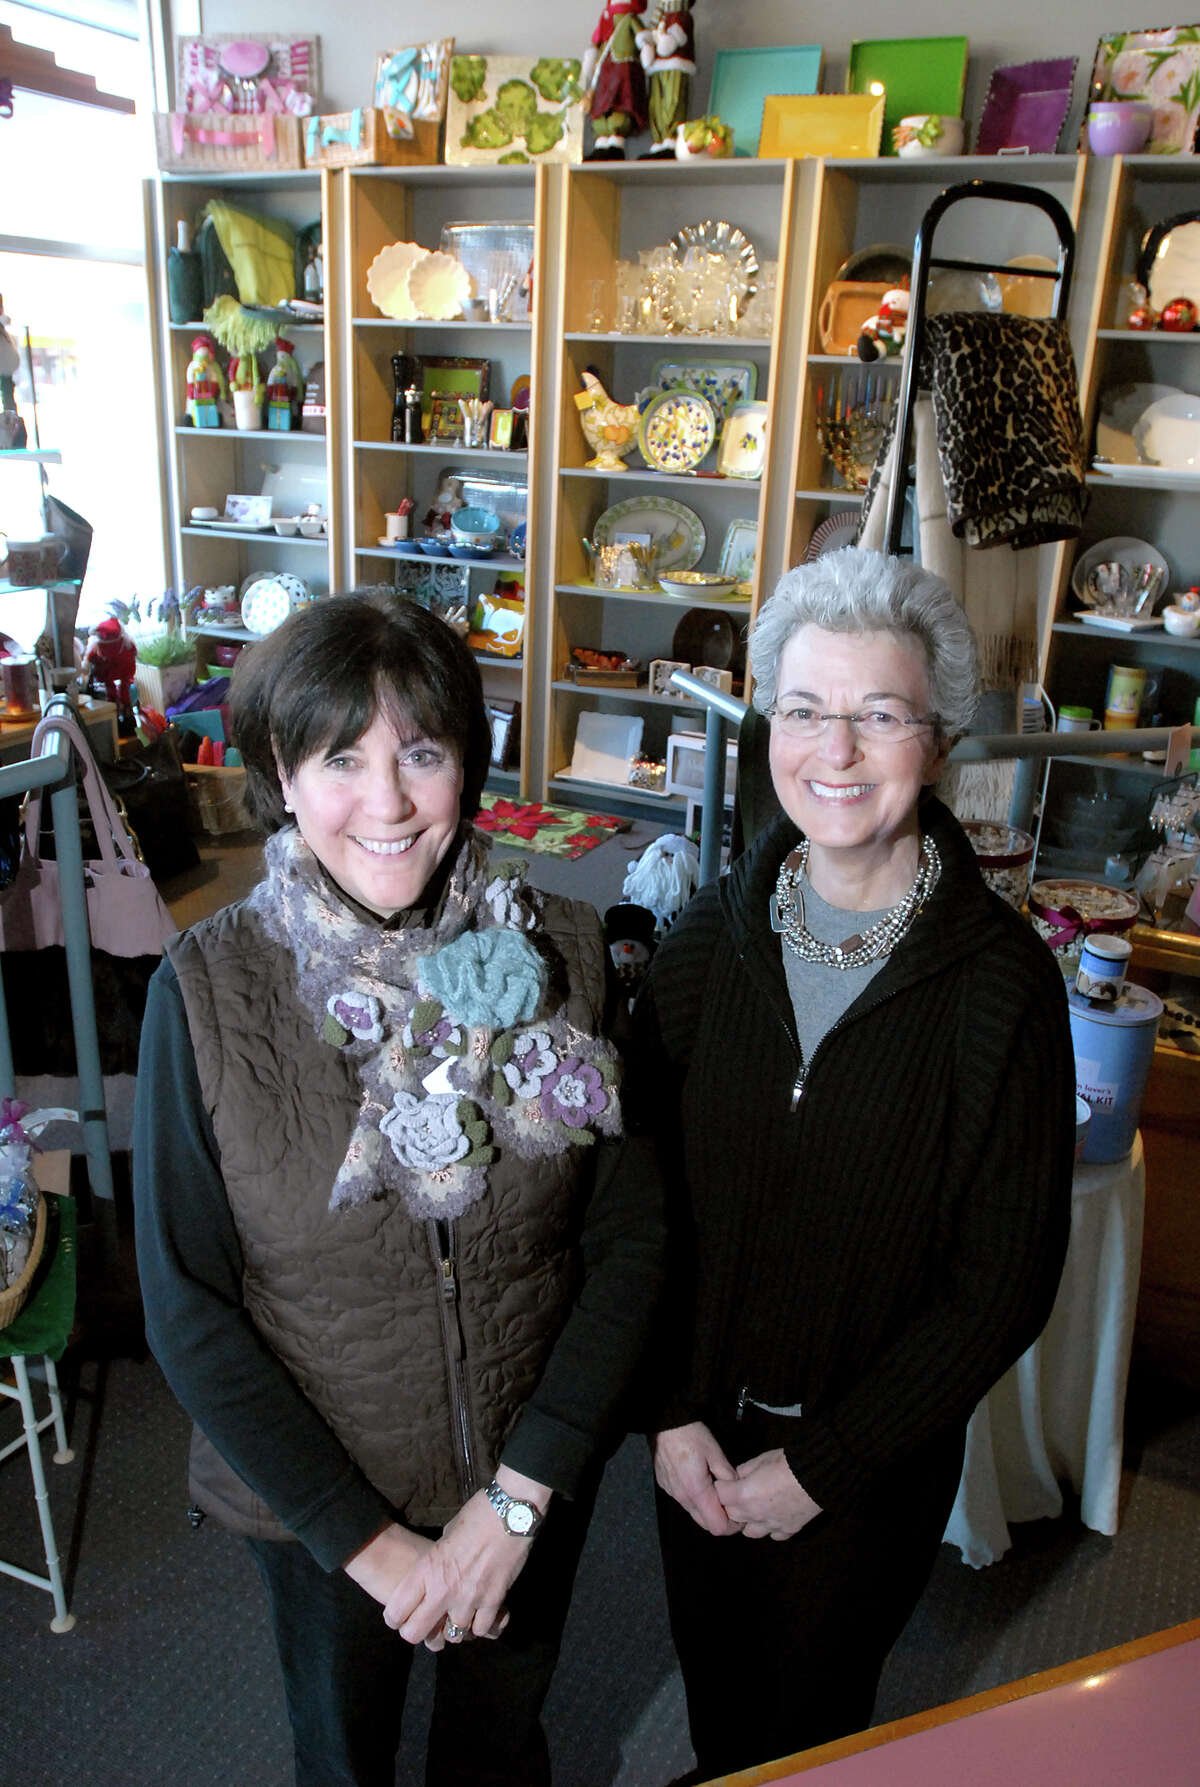 biz-boutique-ag-12/17/07 Gail Greenberg (left) and Pearl-ellen (cq) Shure, owners of The Write Approach, are photographed in their store at 1306 Whalley Ave. in New Haven on 12/17/2007. Photo by Arnold Gold AG0239C